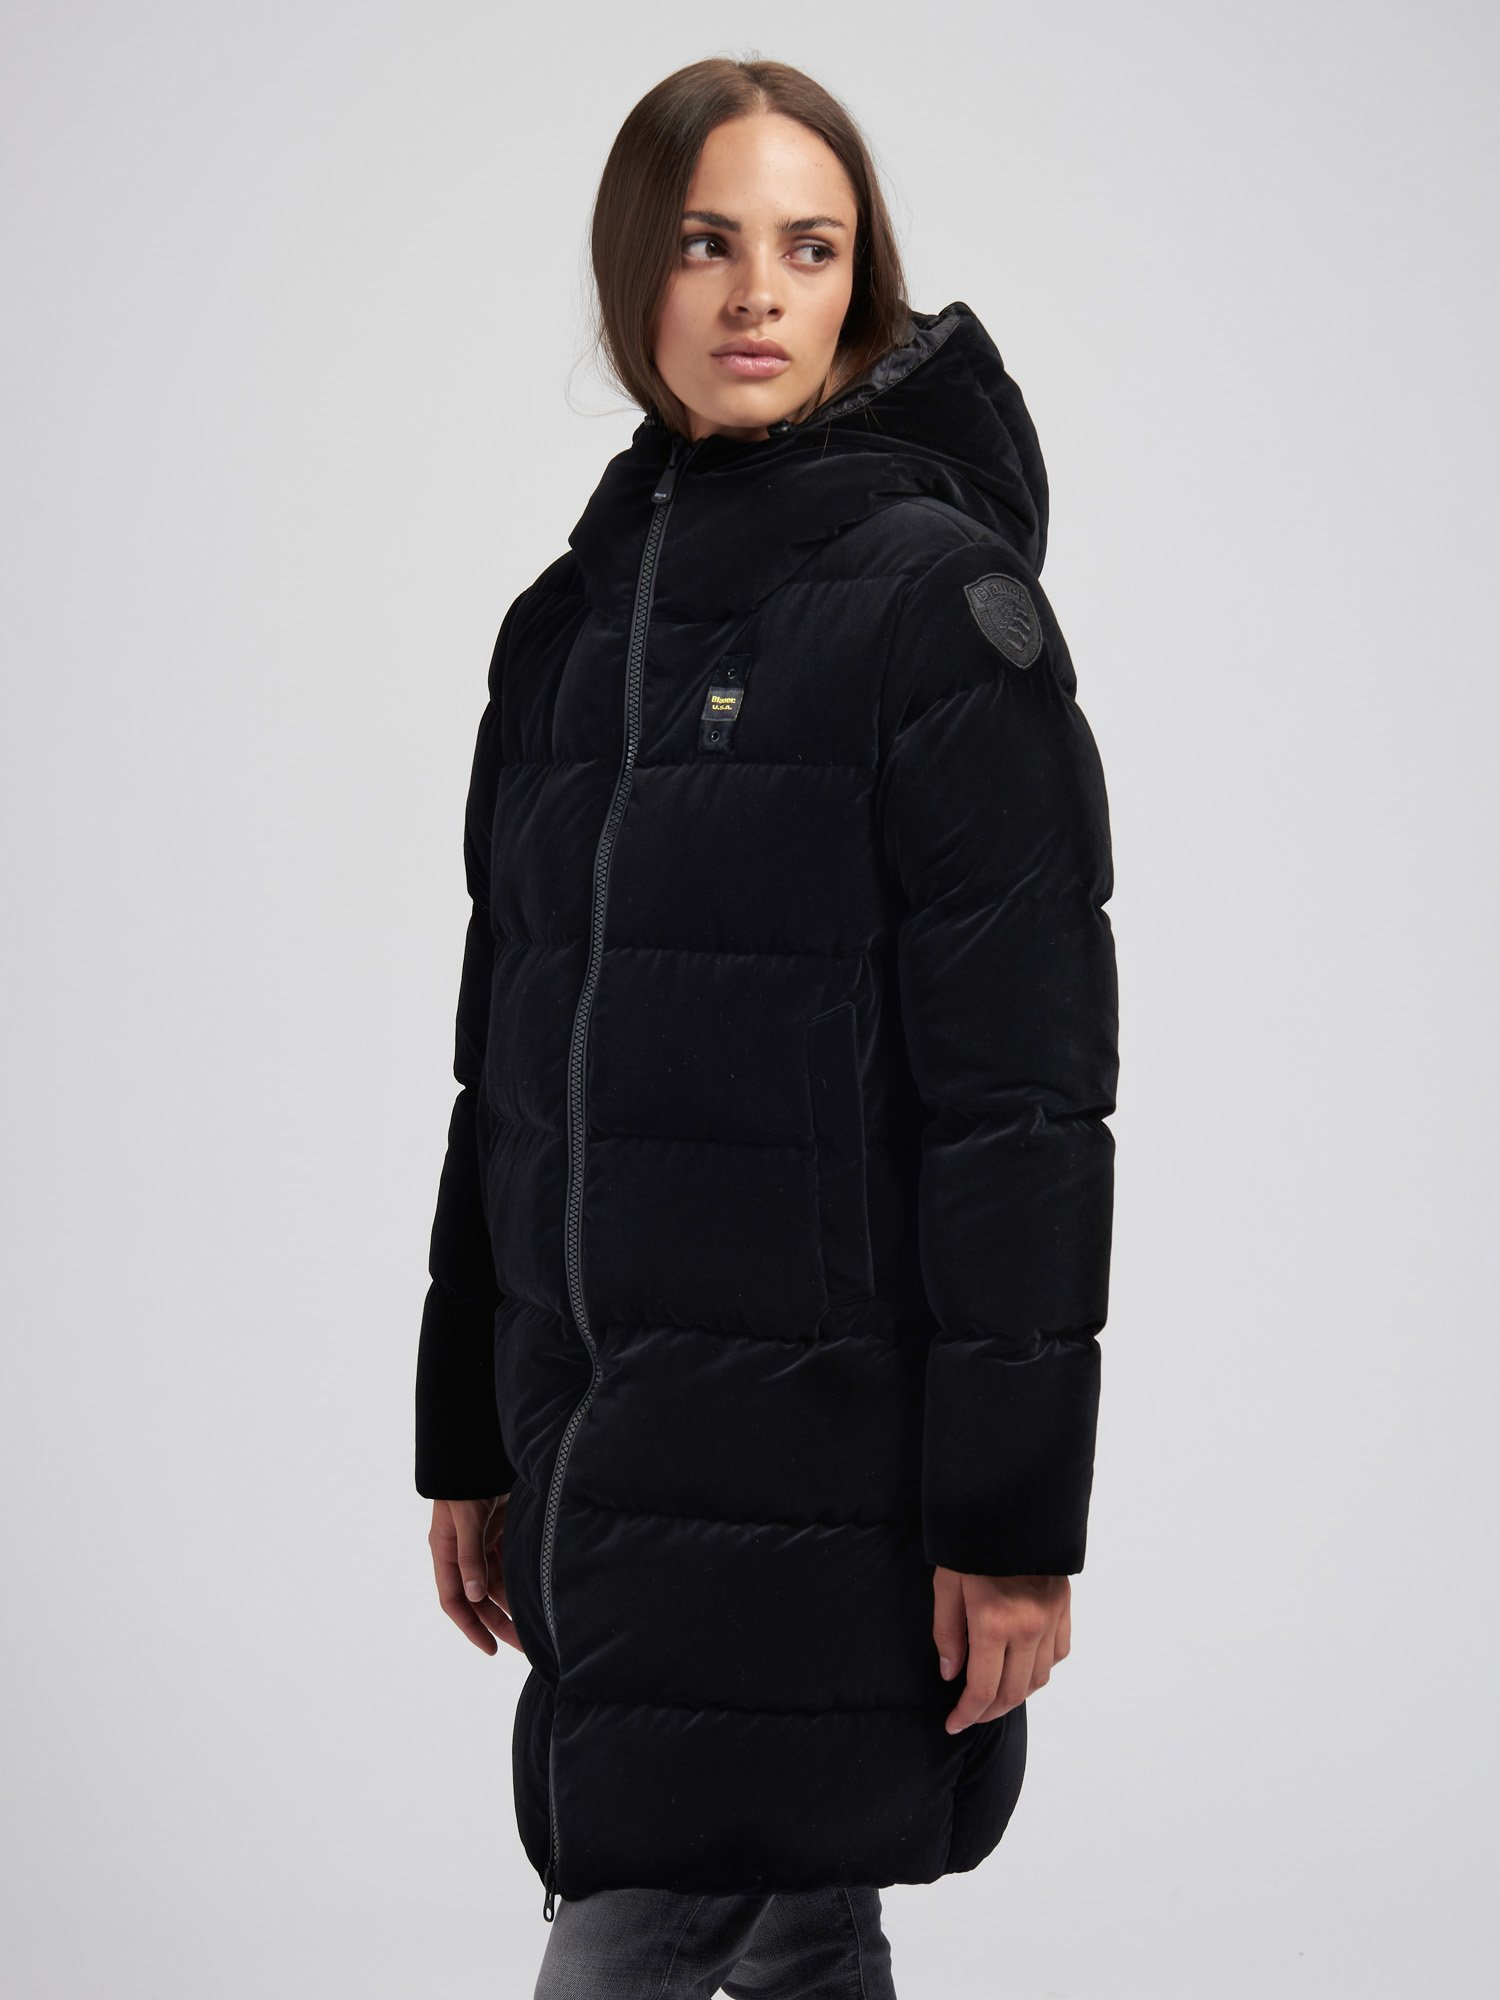 ALICE LONG DOWN JACKET IN VELVET - Blauer